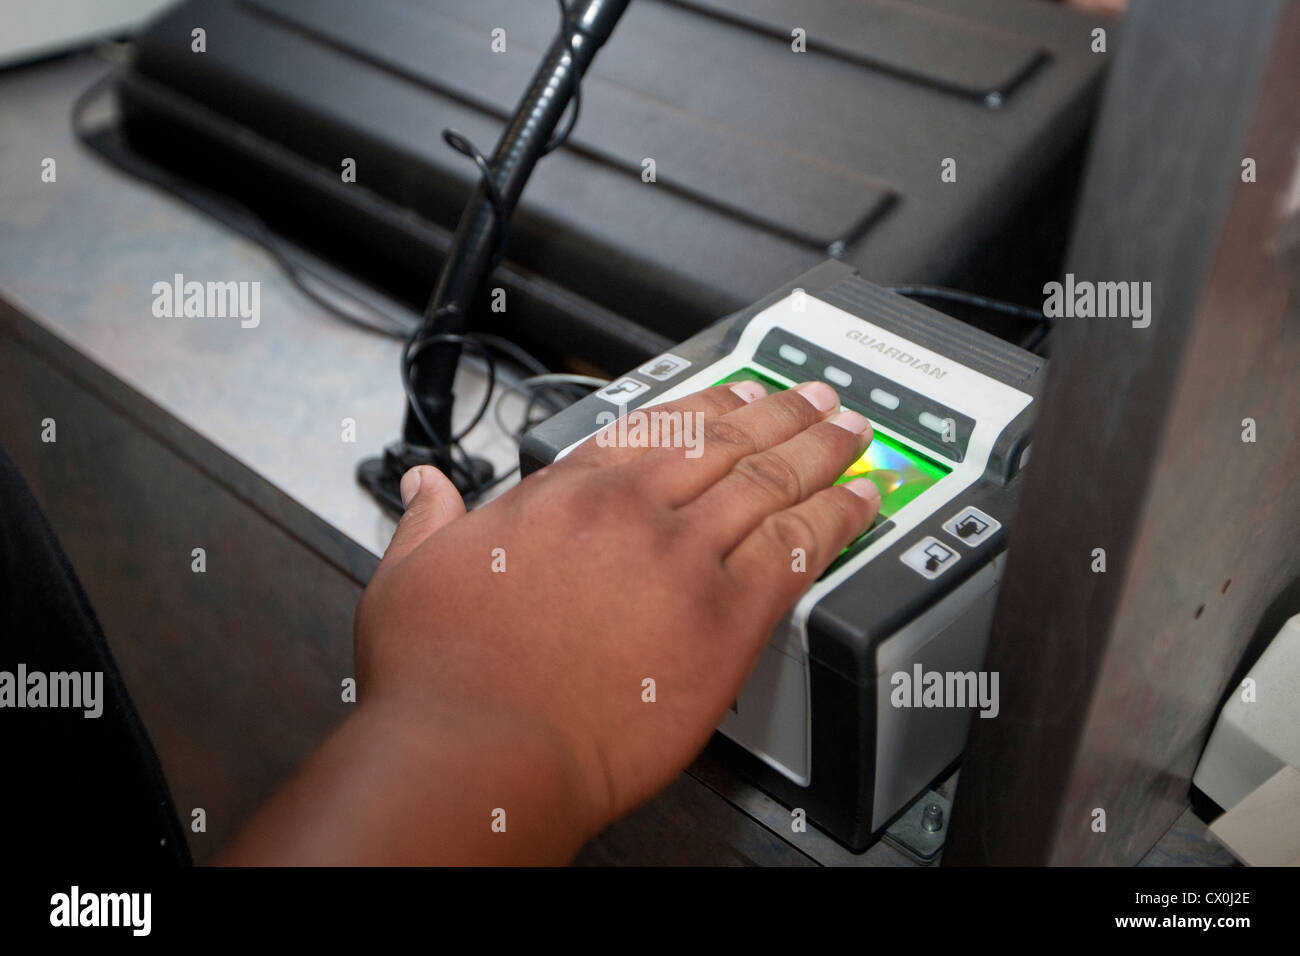 U.S. Customs and Border Protection Officer verwendet Scanner zu dokumentieren und Fingerabdruck-Individuen, die Stockbild